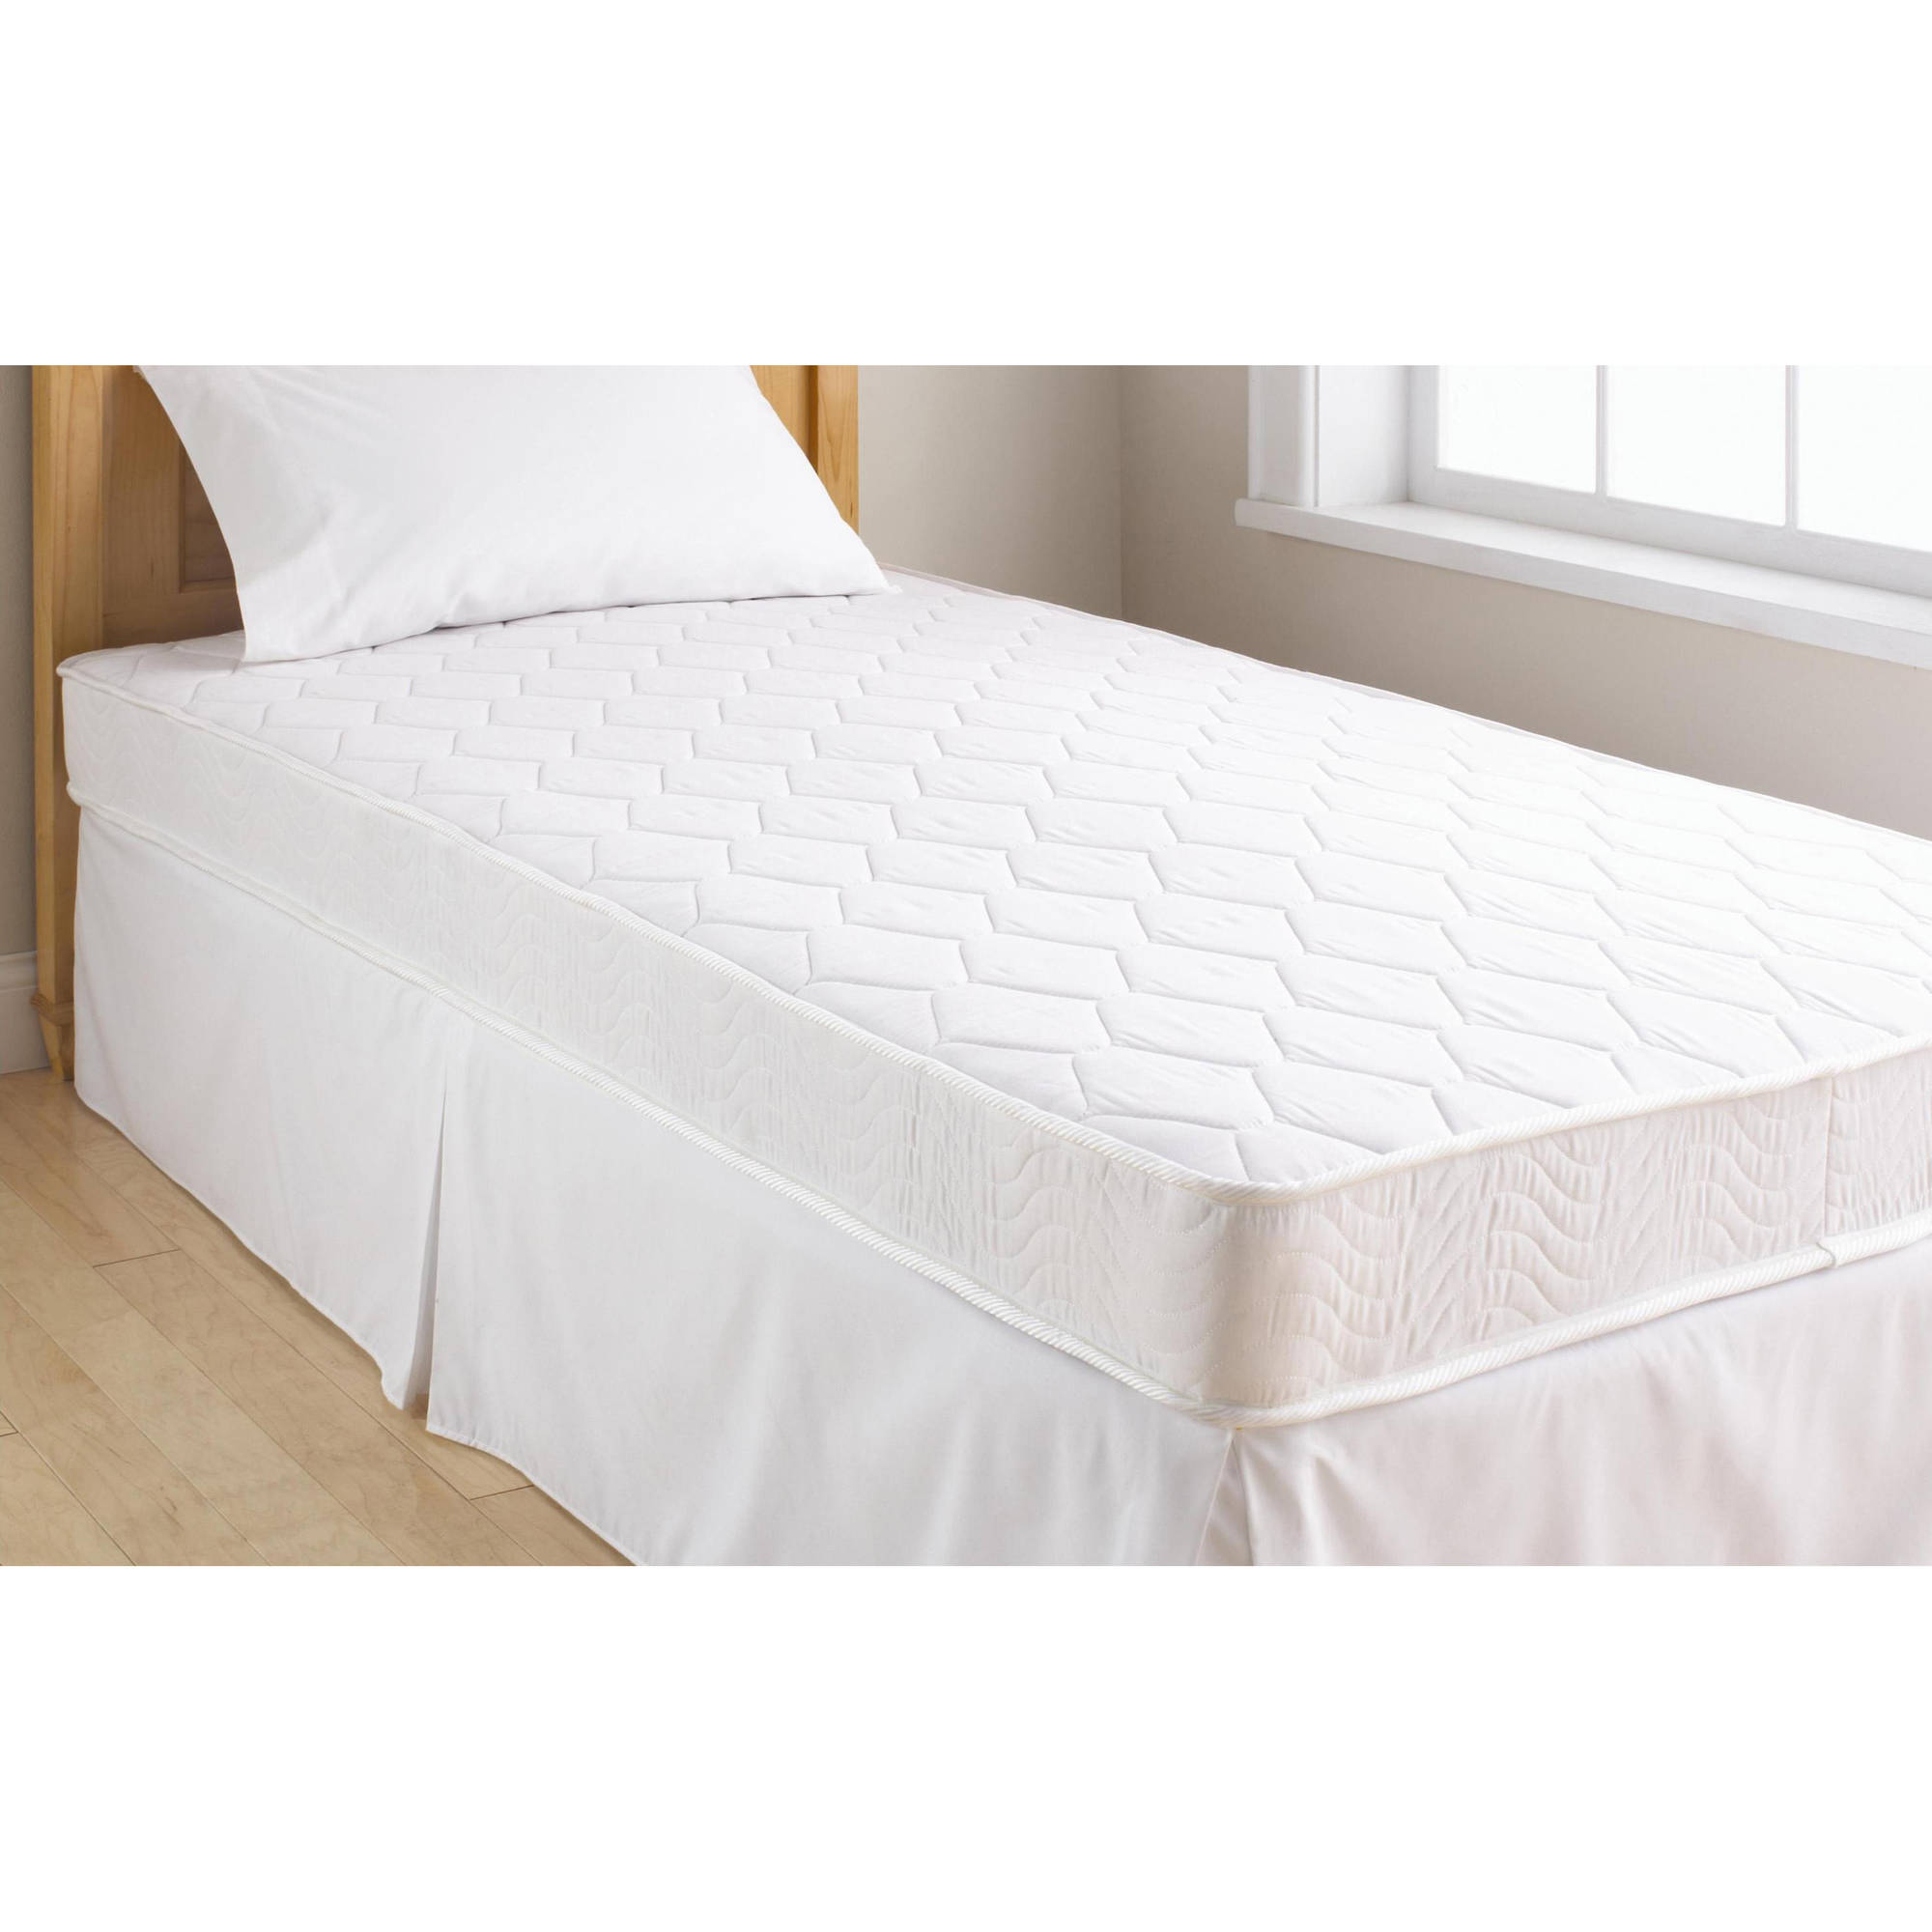 Mainstays 6 inch Inner Spring Coil Mattress, Multiple Sizes by Generic